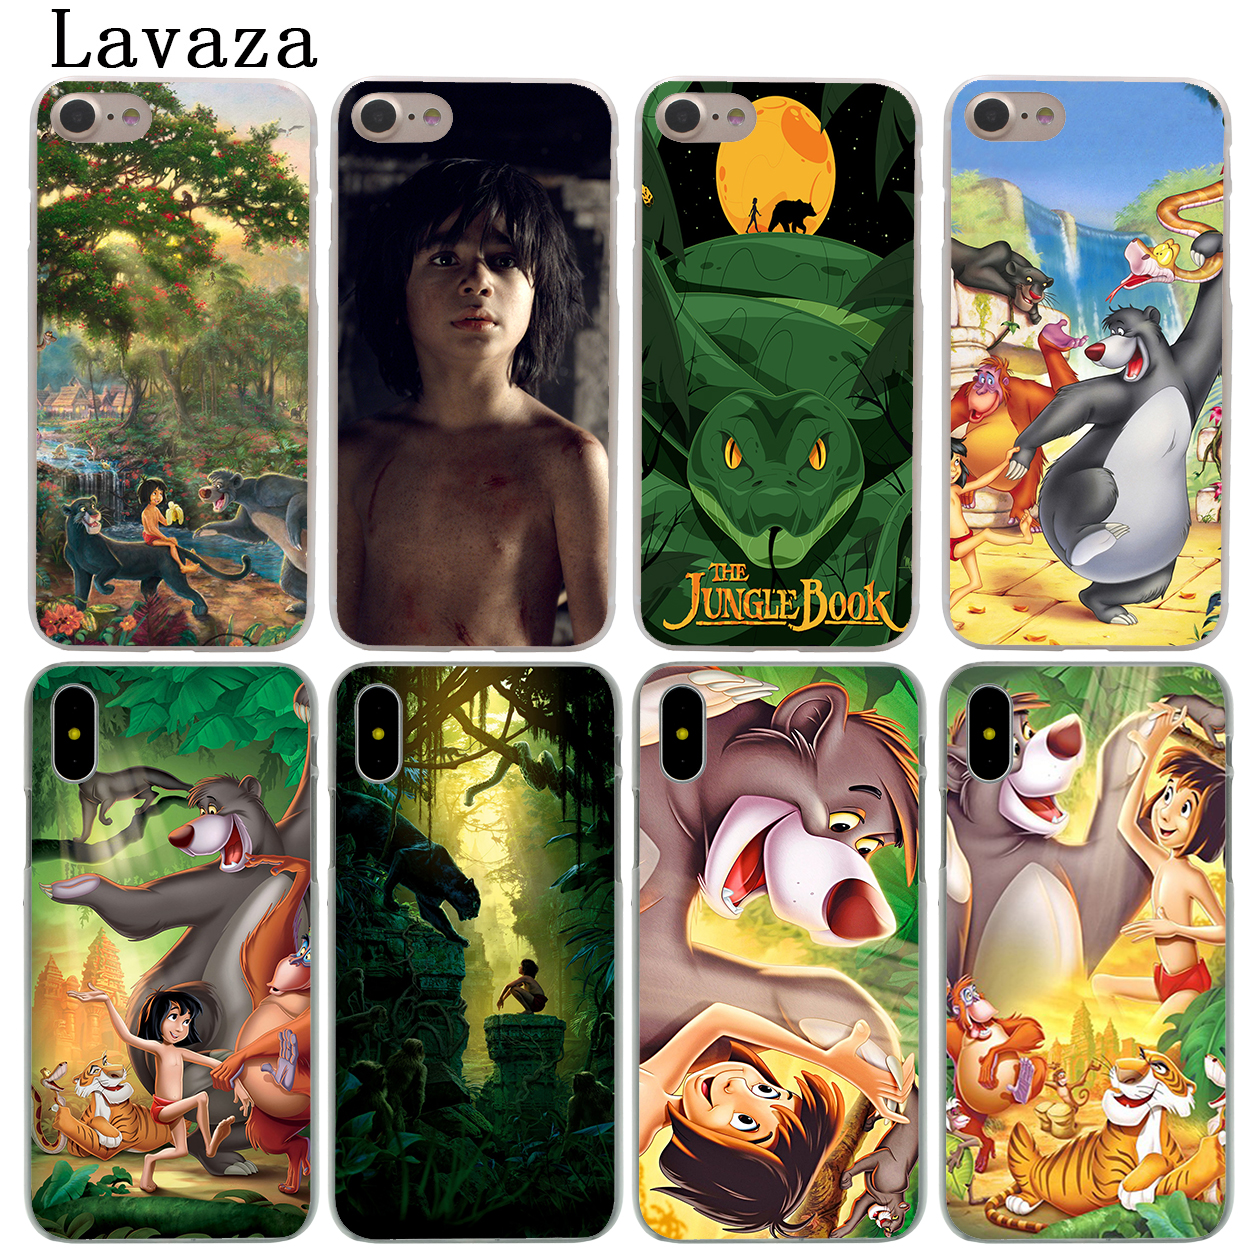 Lavaza Cartoon The Jungle Book Hard Fashion Phone Shell Case for Apple iPhone X 10 8 7 6 6S Plus 5 5S SE 5C 4 4S Coque Cover